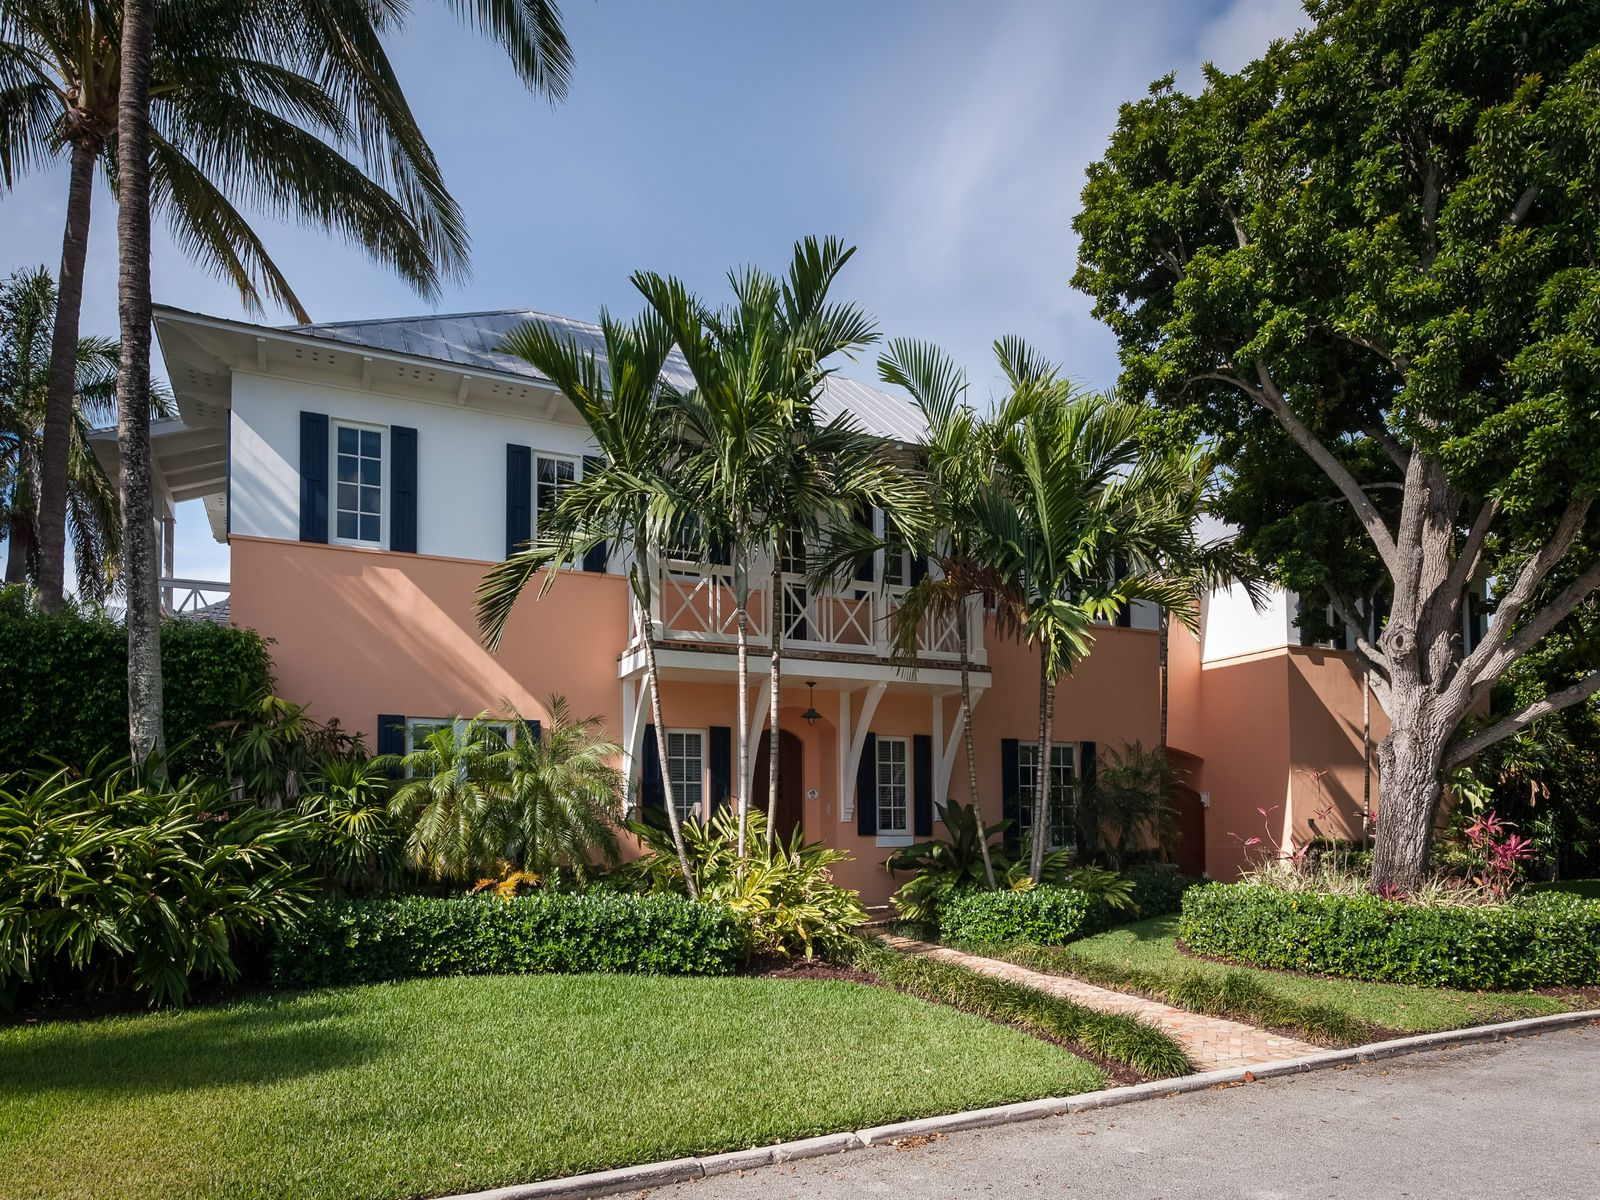 Beautiful British West Indies, West Palm Beach FL Single Family Home - Palm Beach Real Estate